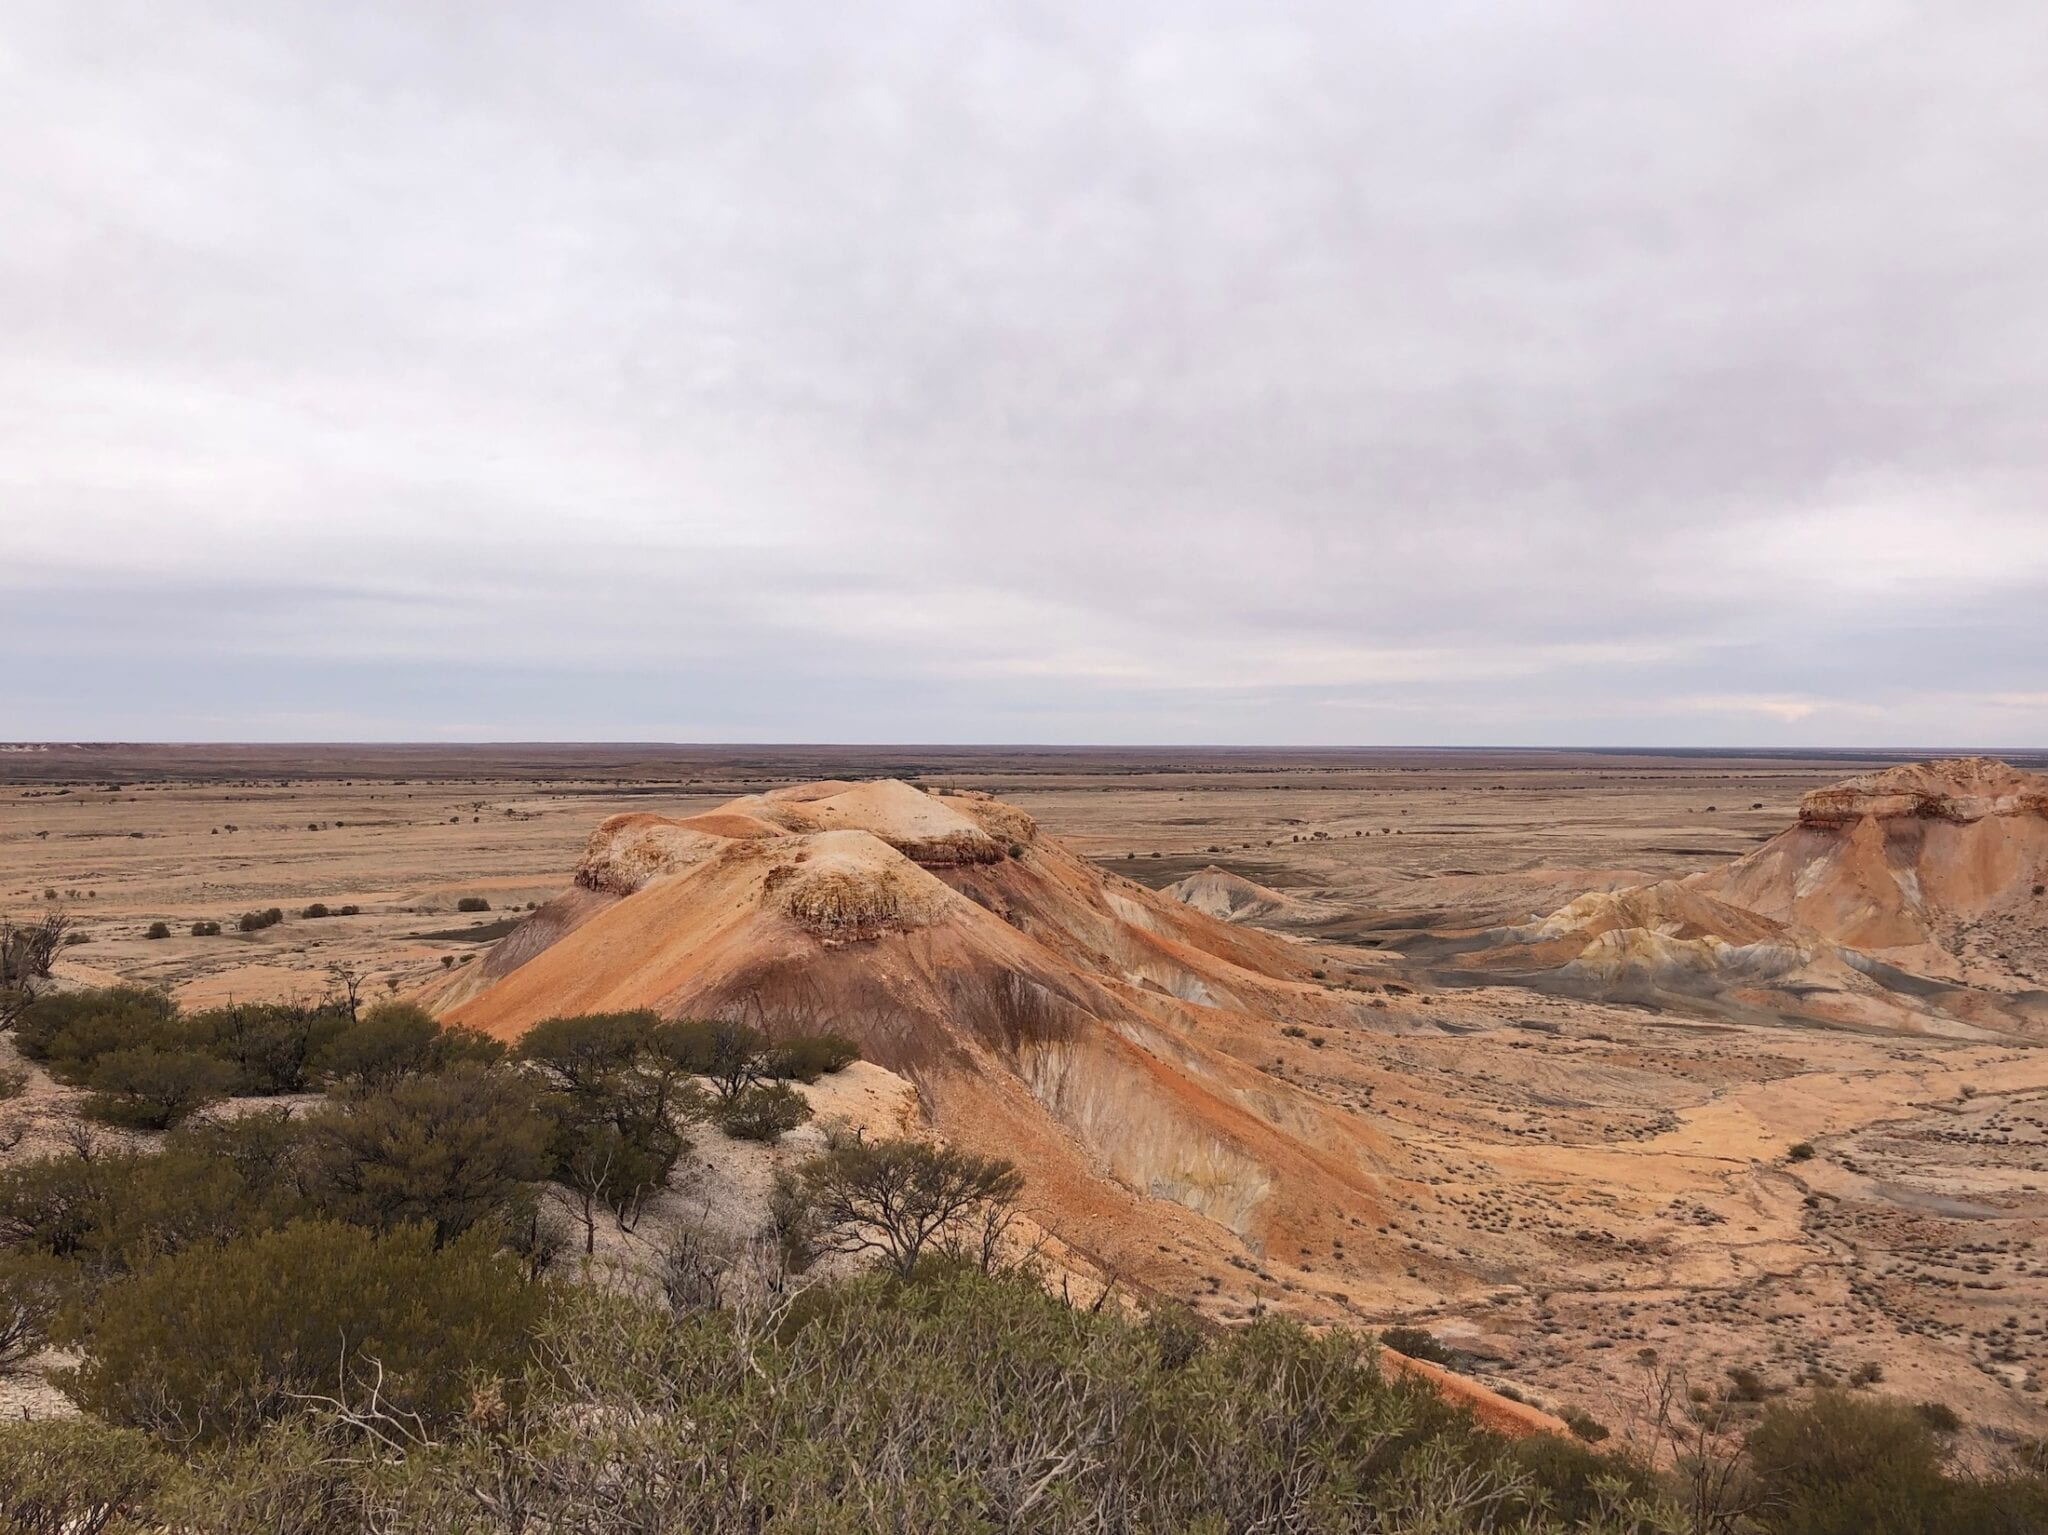 Looking down a ridge at the Painted Desert SA.